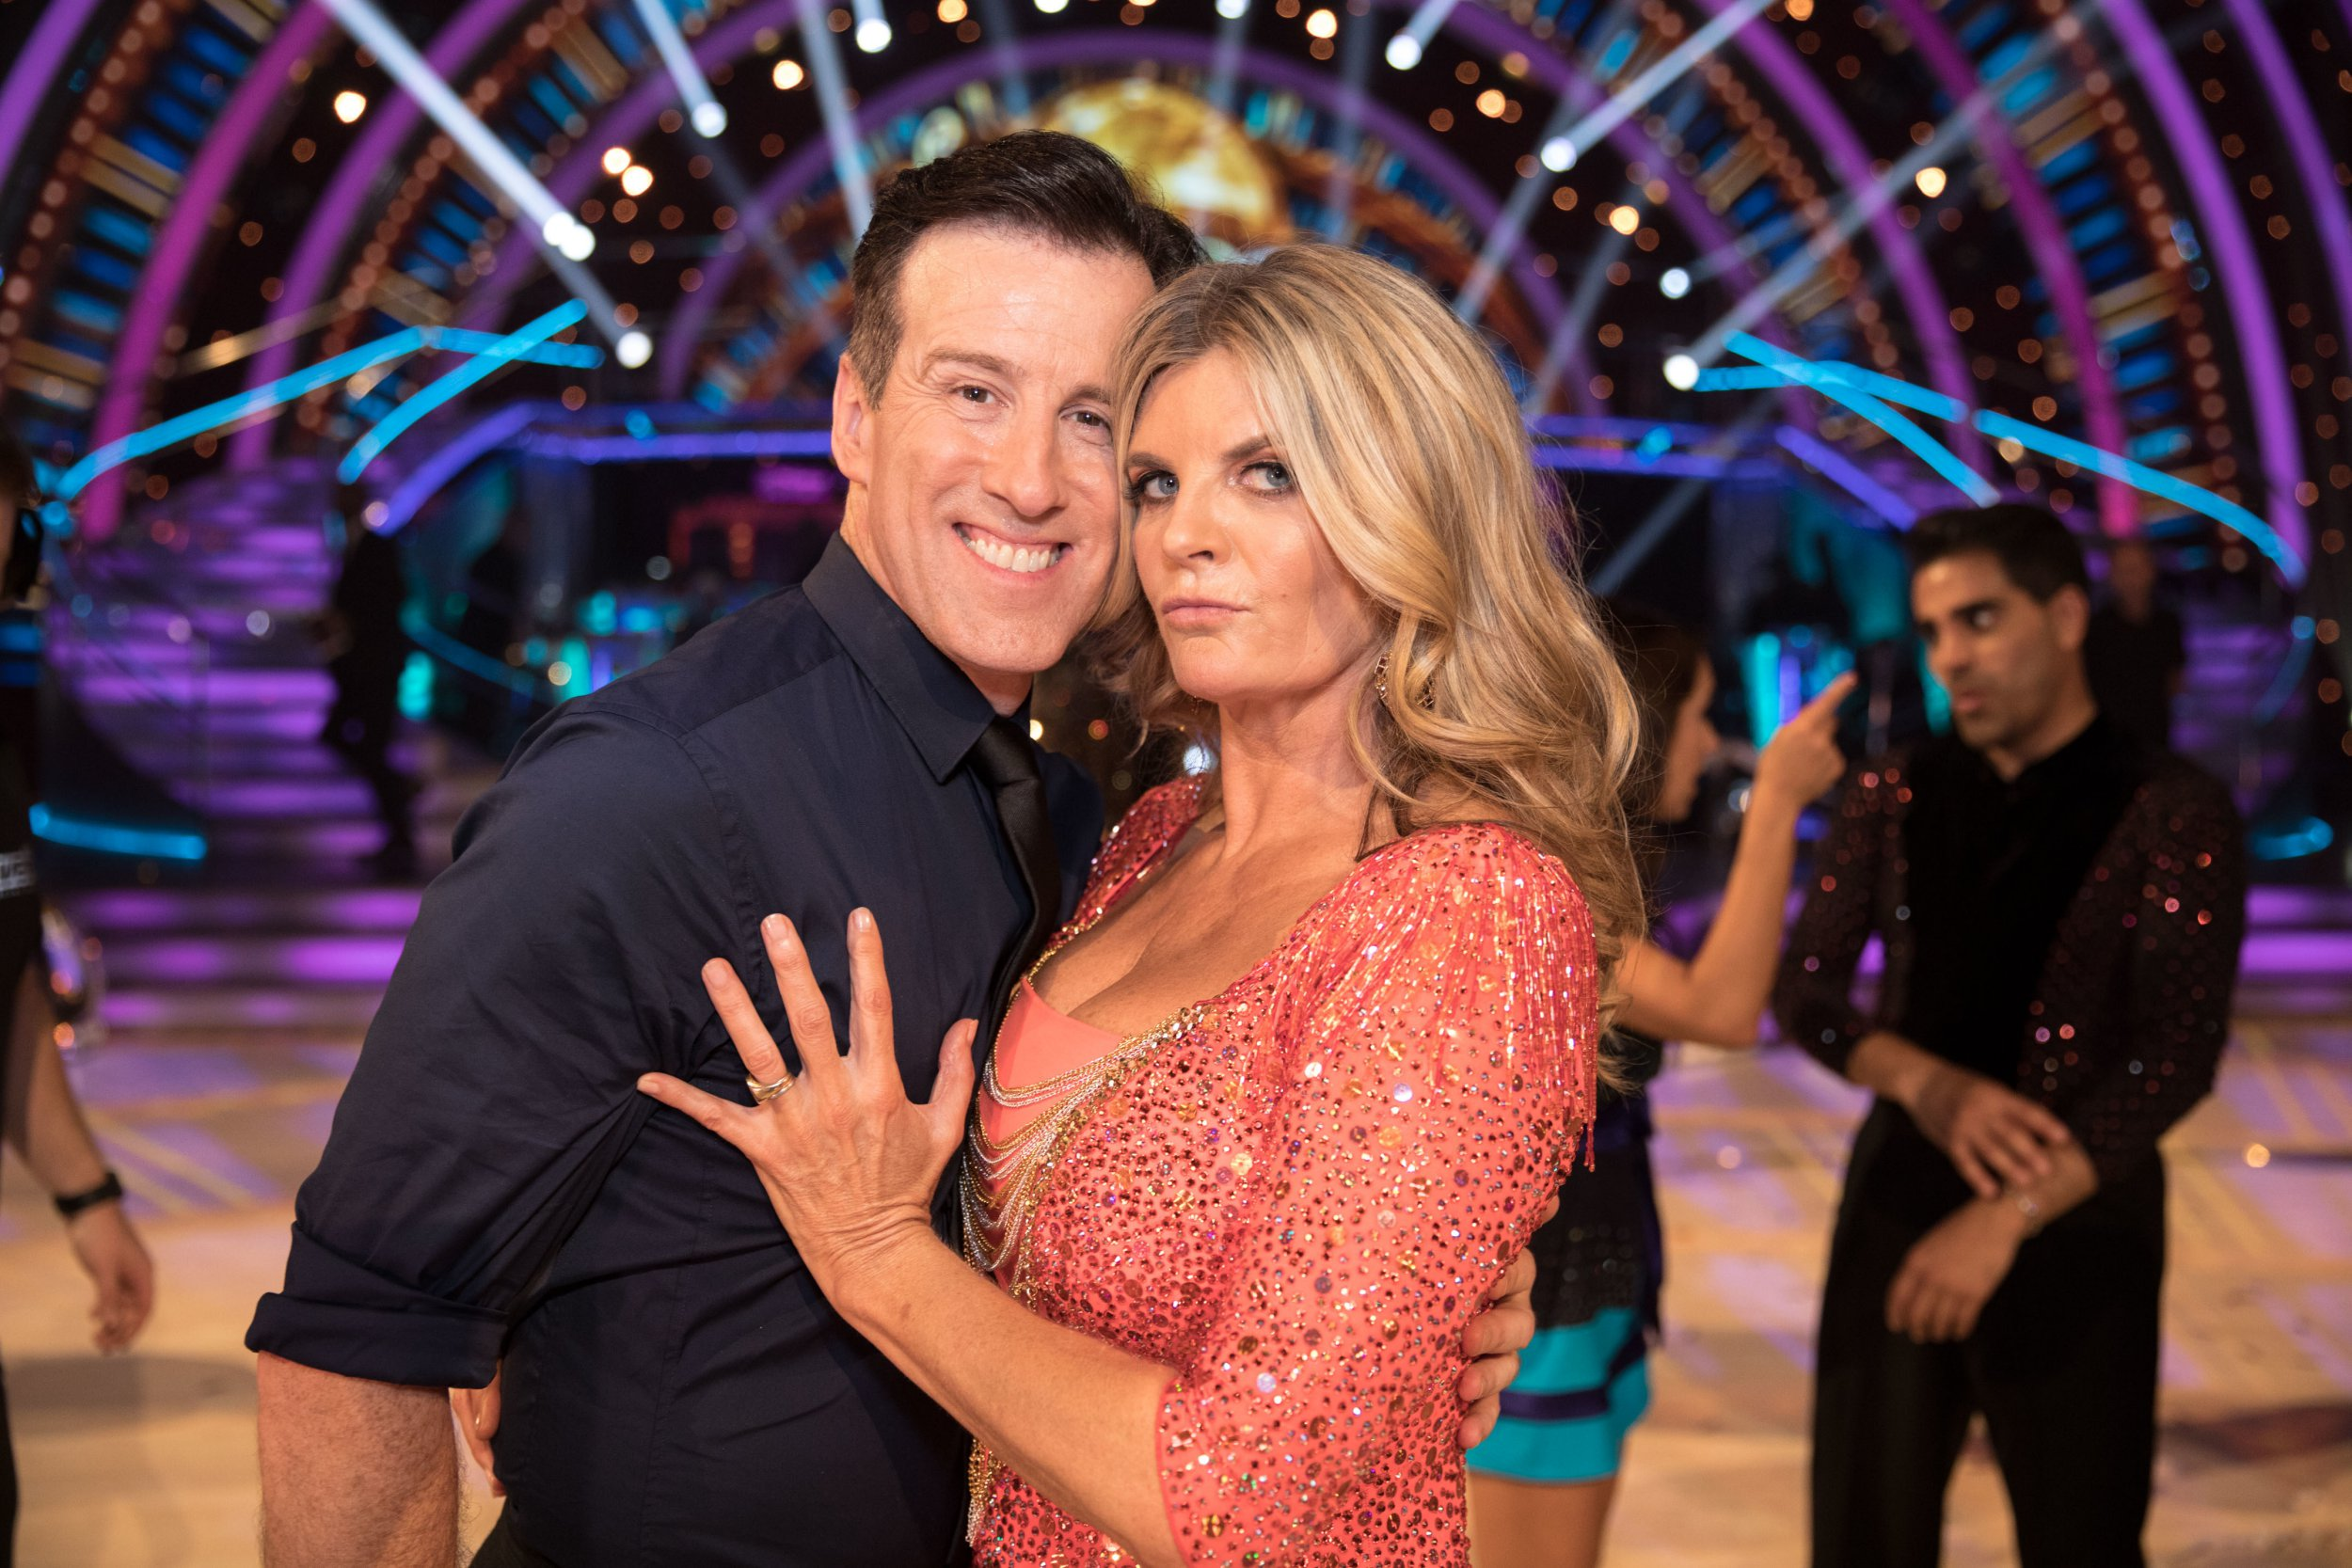 Television programme: Strictly Come Dancing For use in UK, Ireland or Benelux countries only Undated BBC handout photo of Anton Du Beke and Susannah Constantine during the return of the BBC One show, Strictly Come Dancing. PRESS ASSOCIATION Photo. Issue date: Saturday September 8, 2018. See PA story SHOWBIZ Strictly. Photo credit should read: BBC/PA Wire NOTE TO EDITORS: Not for use more than 21 days after issue. You may use this picture without charge only for the purpose of publicising or reporting on current BBC programming, personnel or other BBC output or activity within 21 days of issue. Any use after that time MUST be cleared through BBC Picture Publicity. Please credit the image to the BBC and any named photographer or independent programme maker, as described in the caption.